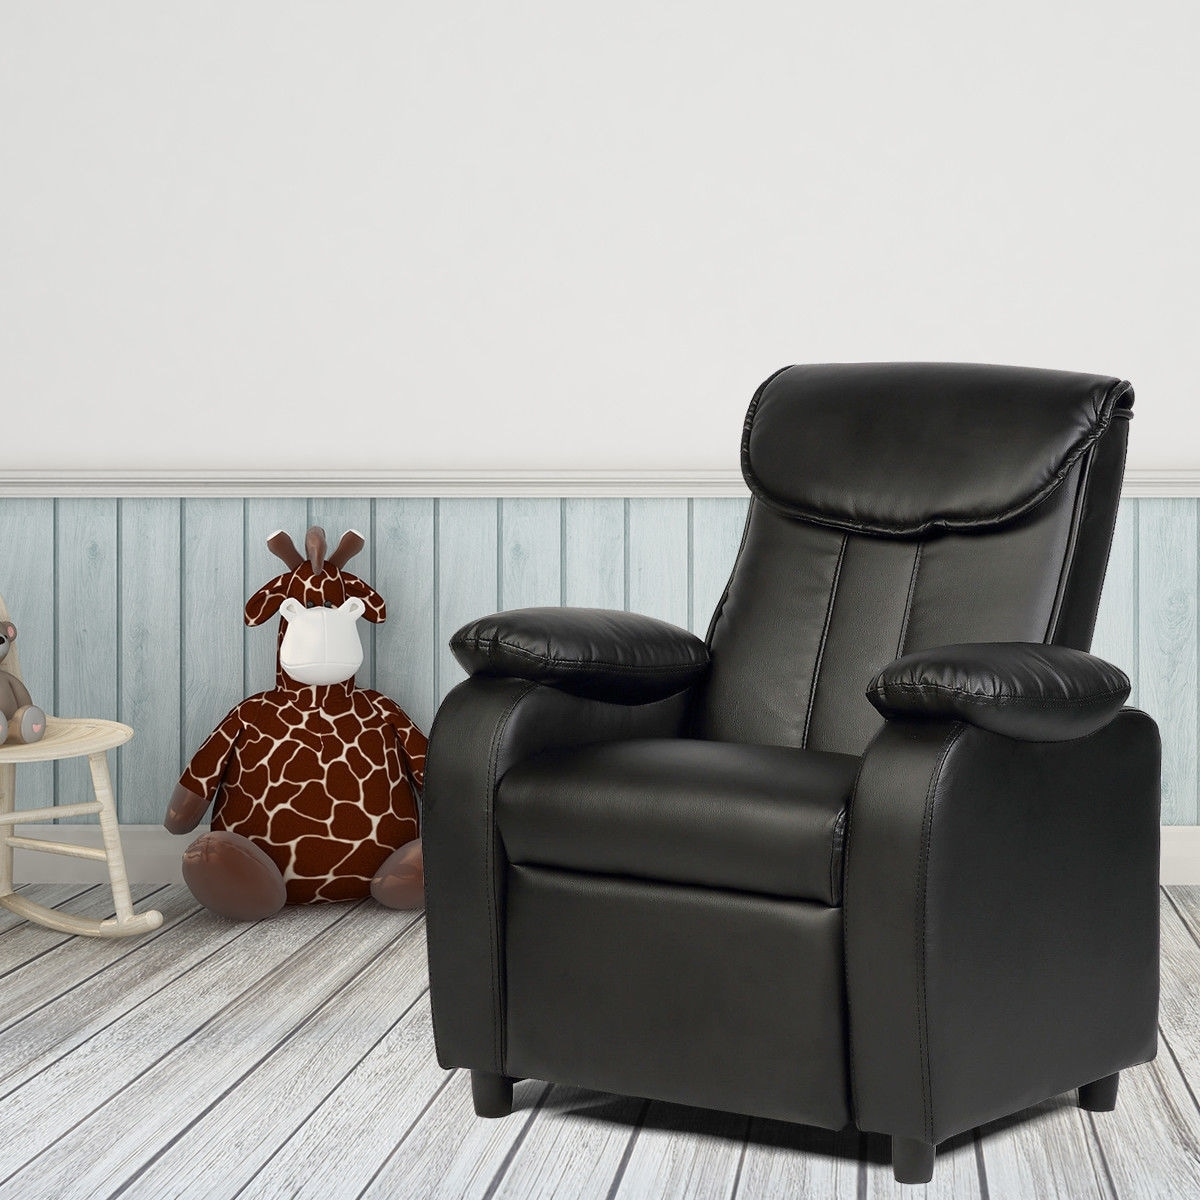 Costway Kid Recliner Sofa Armrest Chair Couch Children Living Room  Furniture Home Black